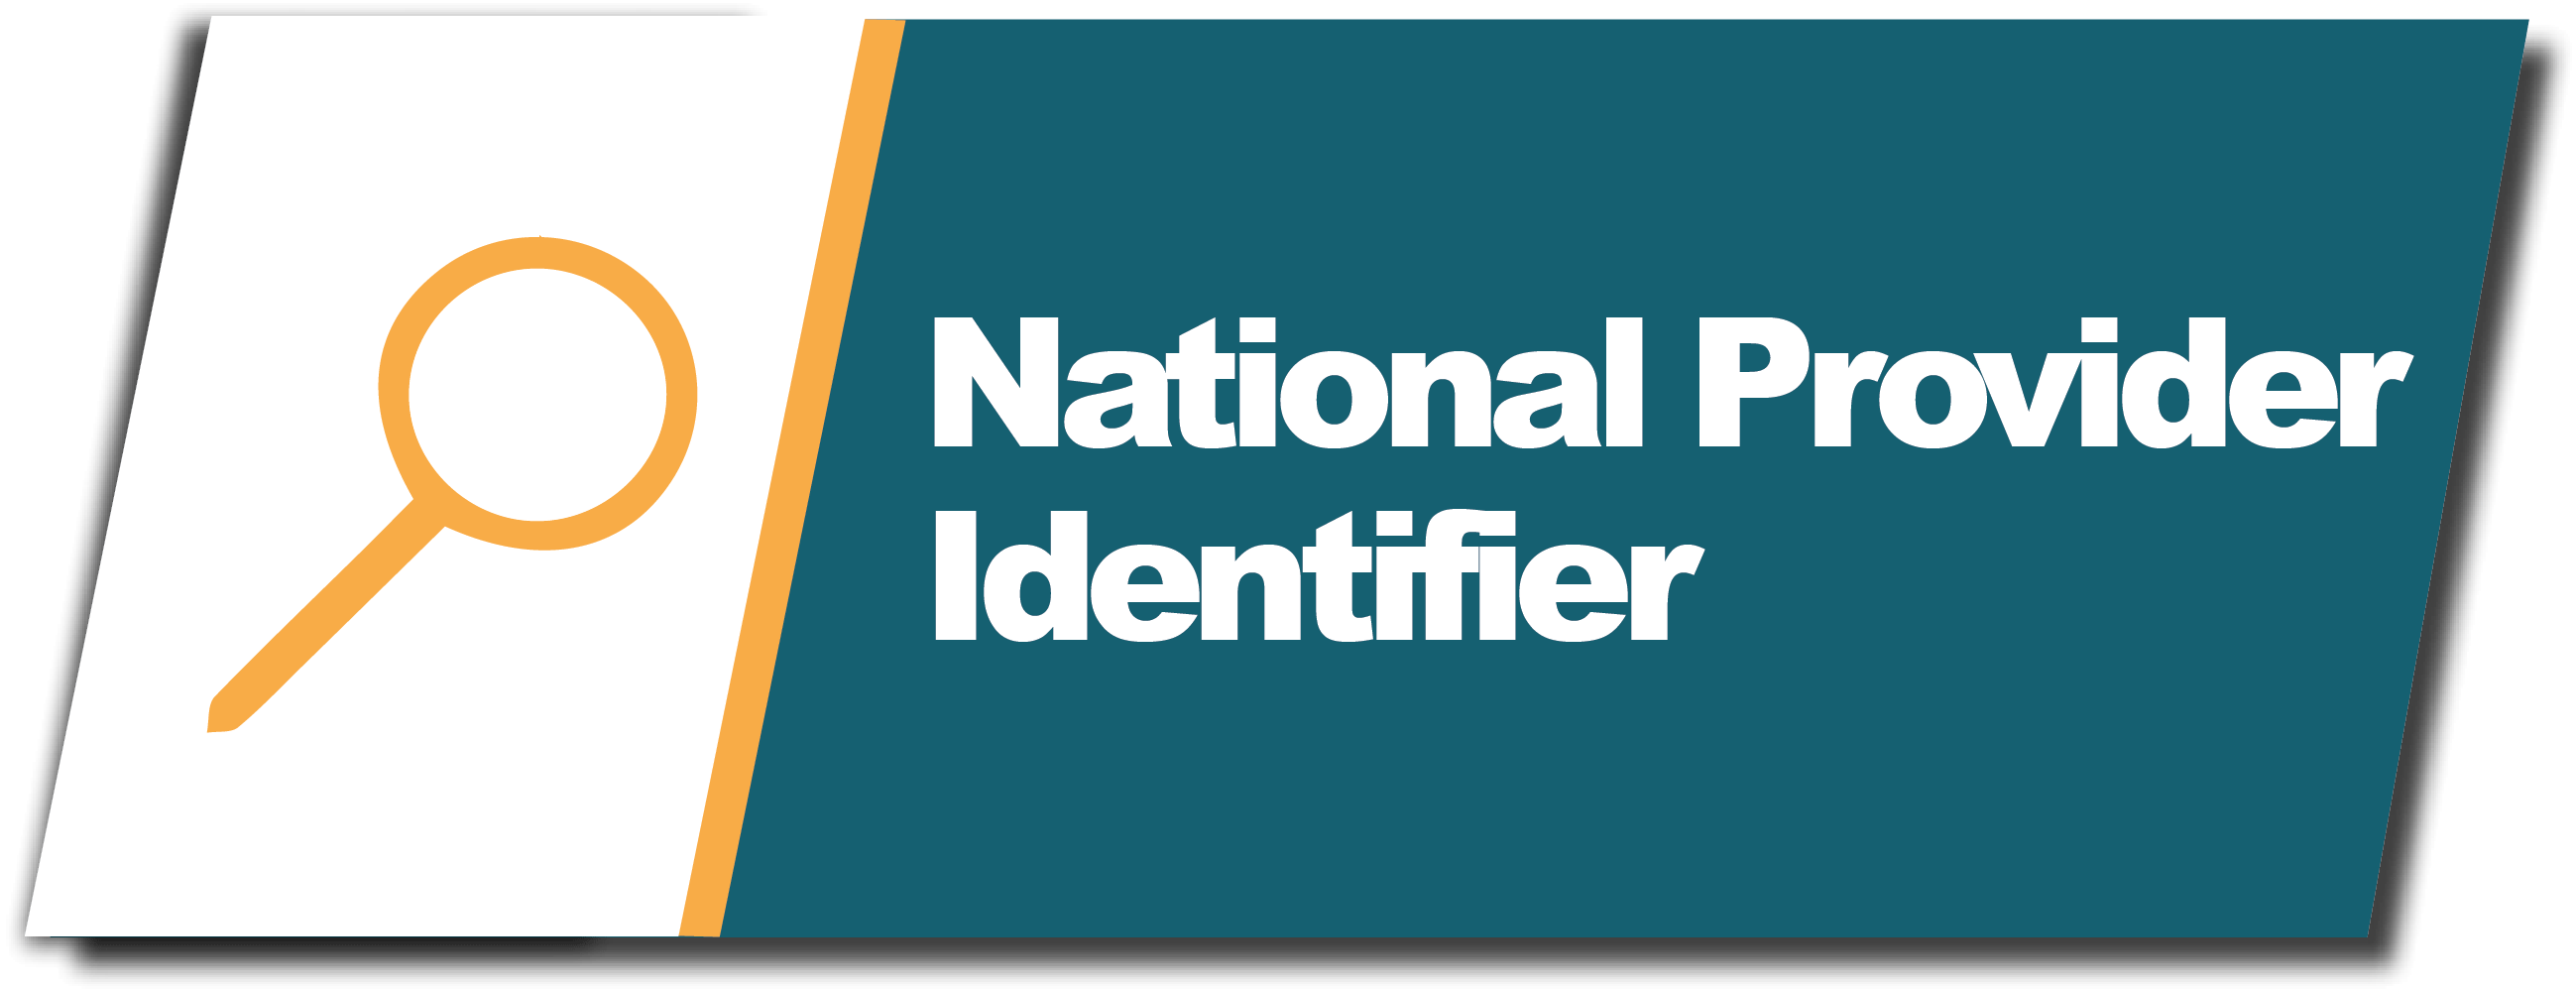 national provider identifer